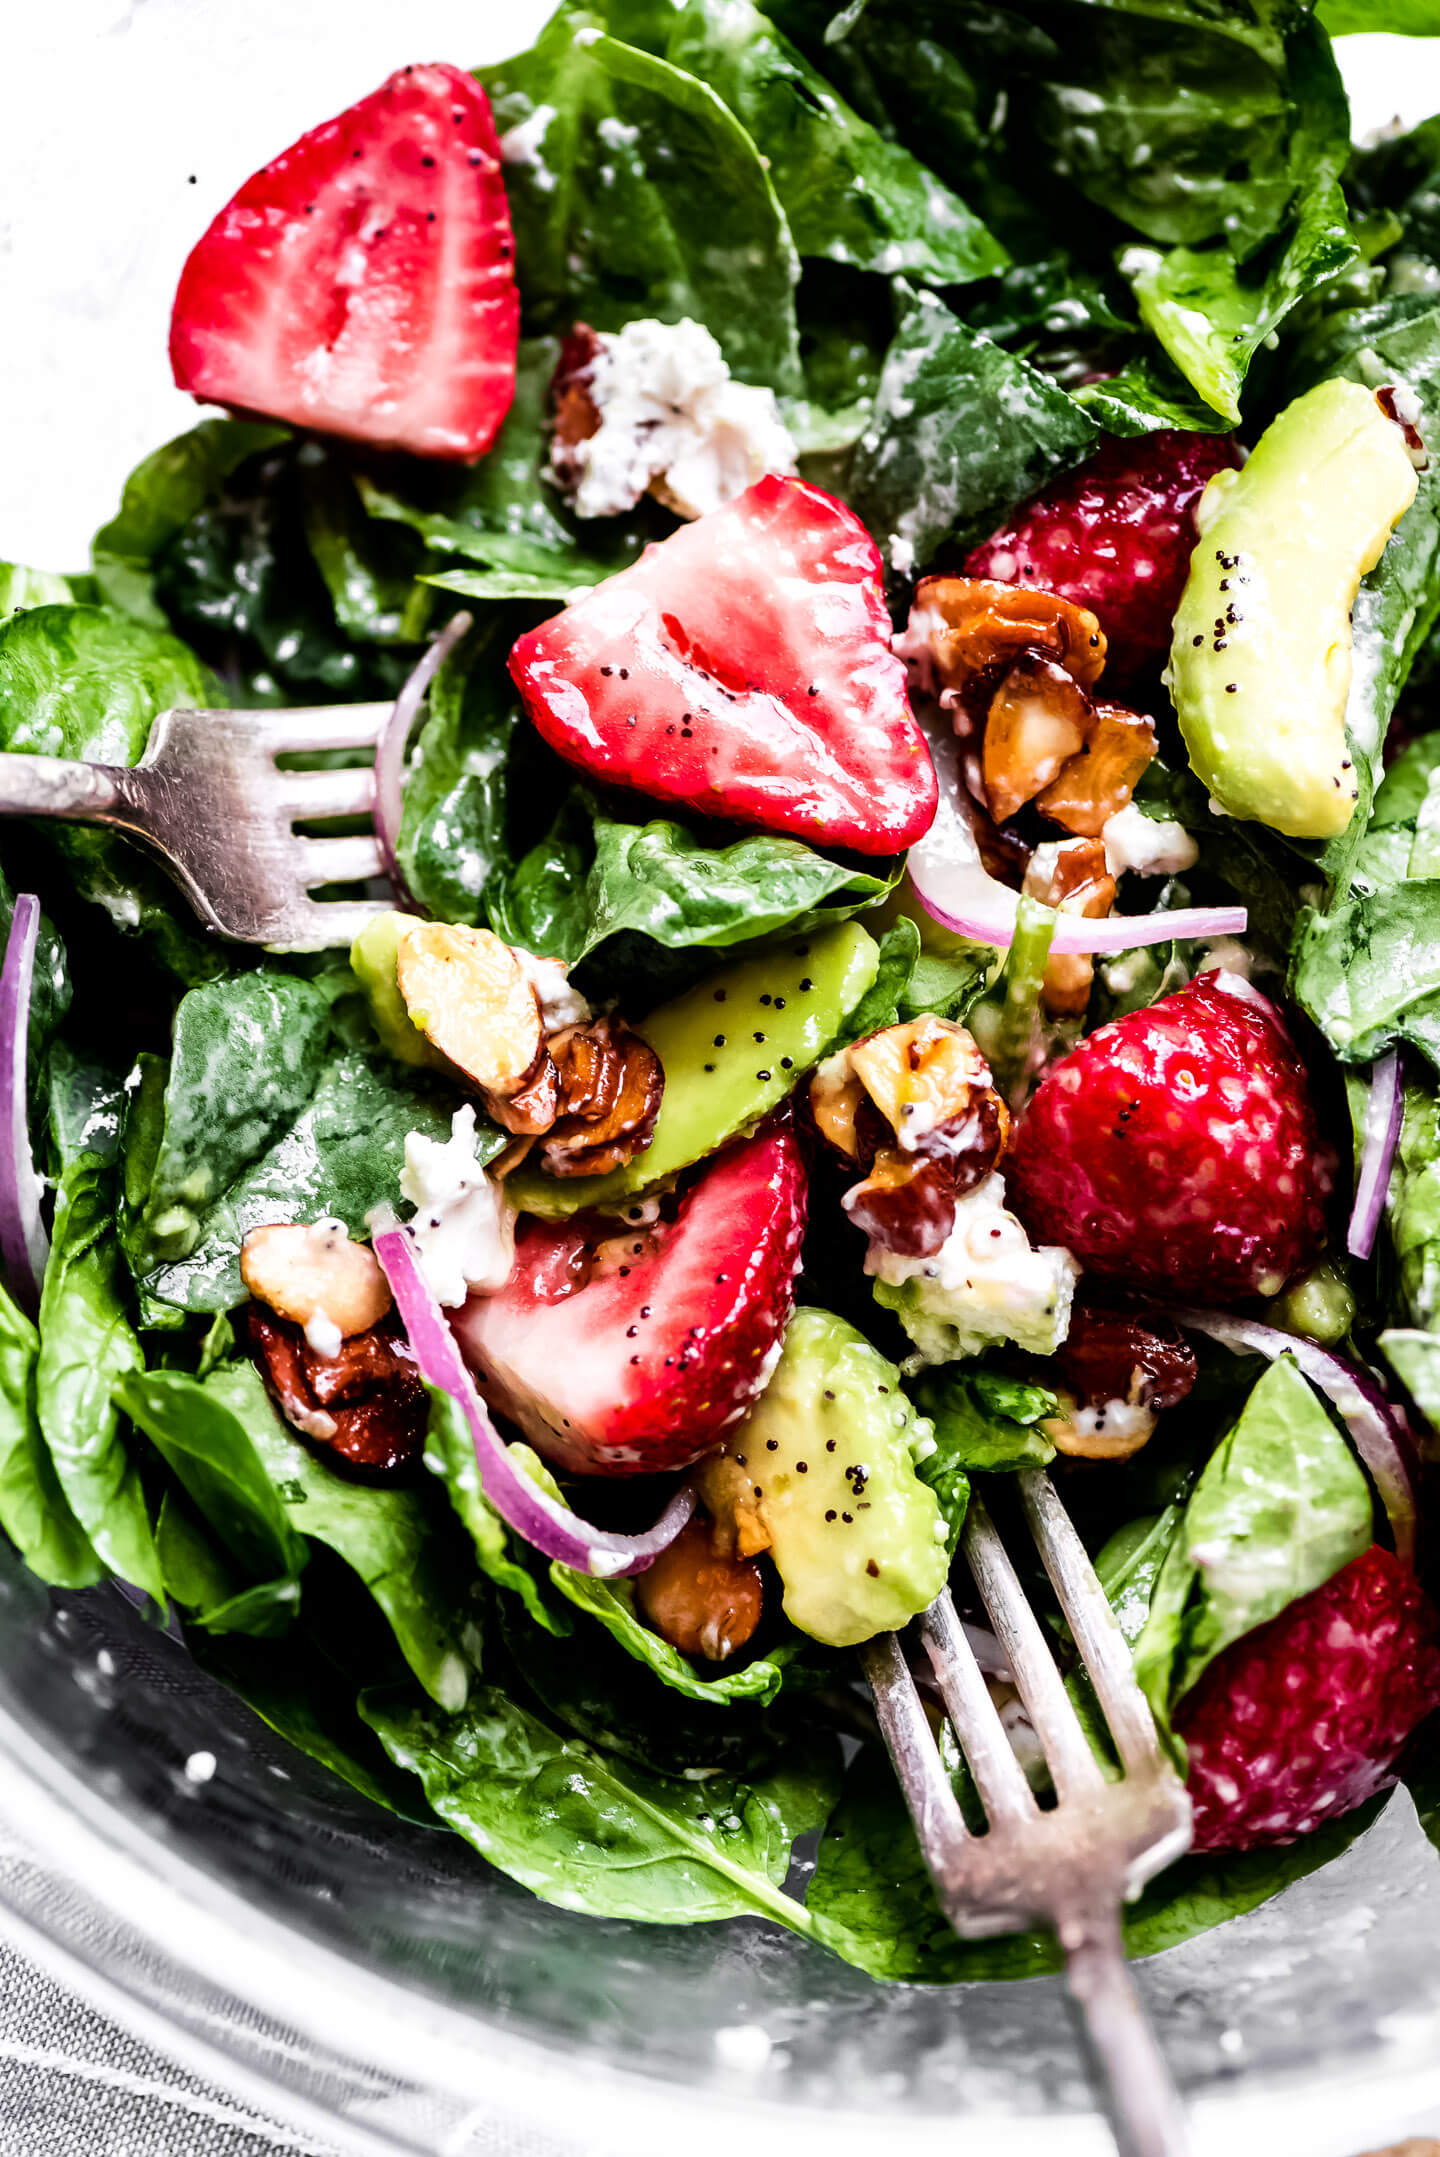 A Strawberry Spinach Salad tossed in a homemade poppy seed dressing.